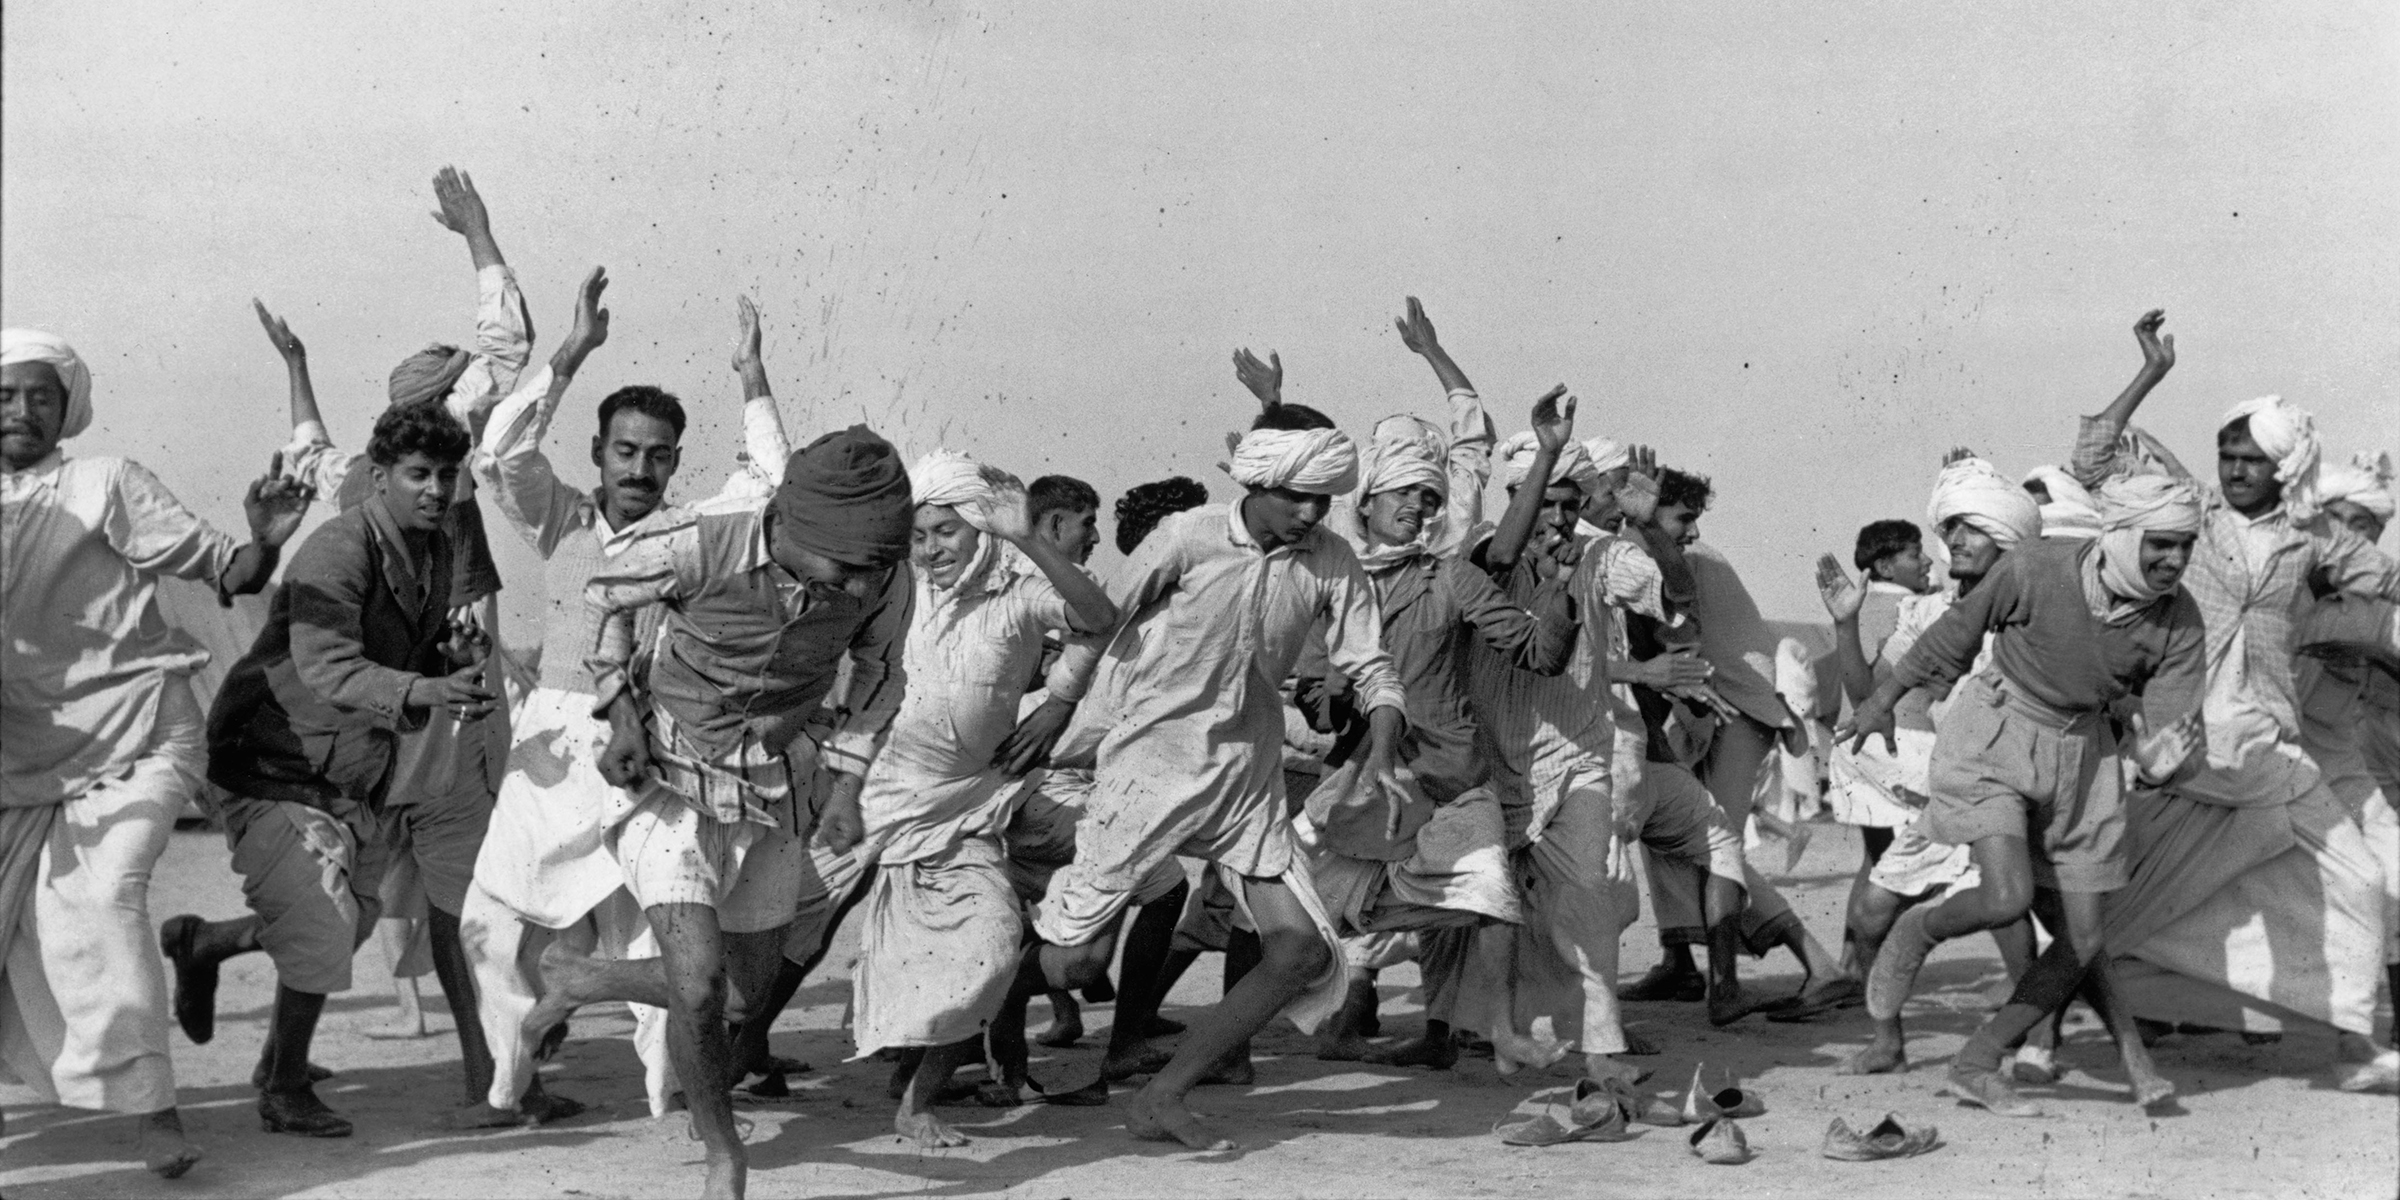 Refugees exercising to drive away lethargy and despair, Kurukshetra, India, 1947. Photograph by Henri Cartier-Bresson. © Henri Cartier-Bresson/Magnum Photos.